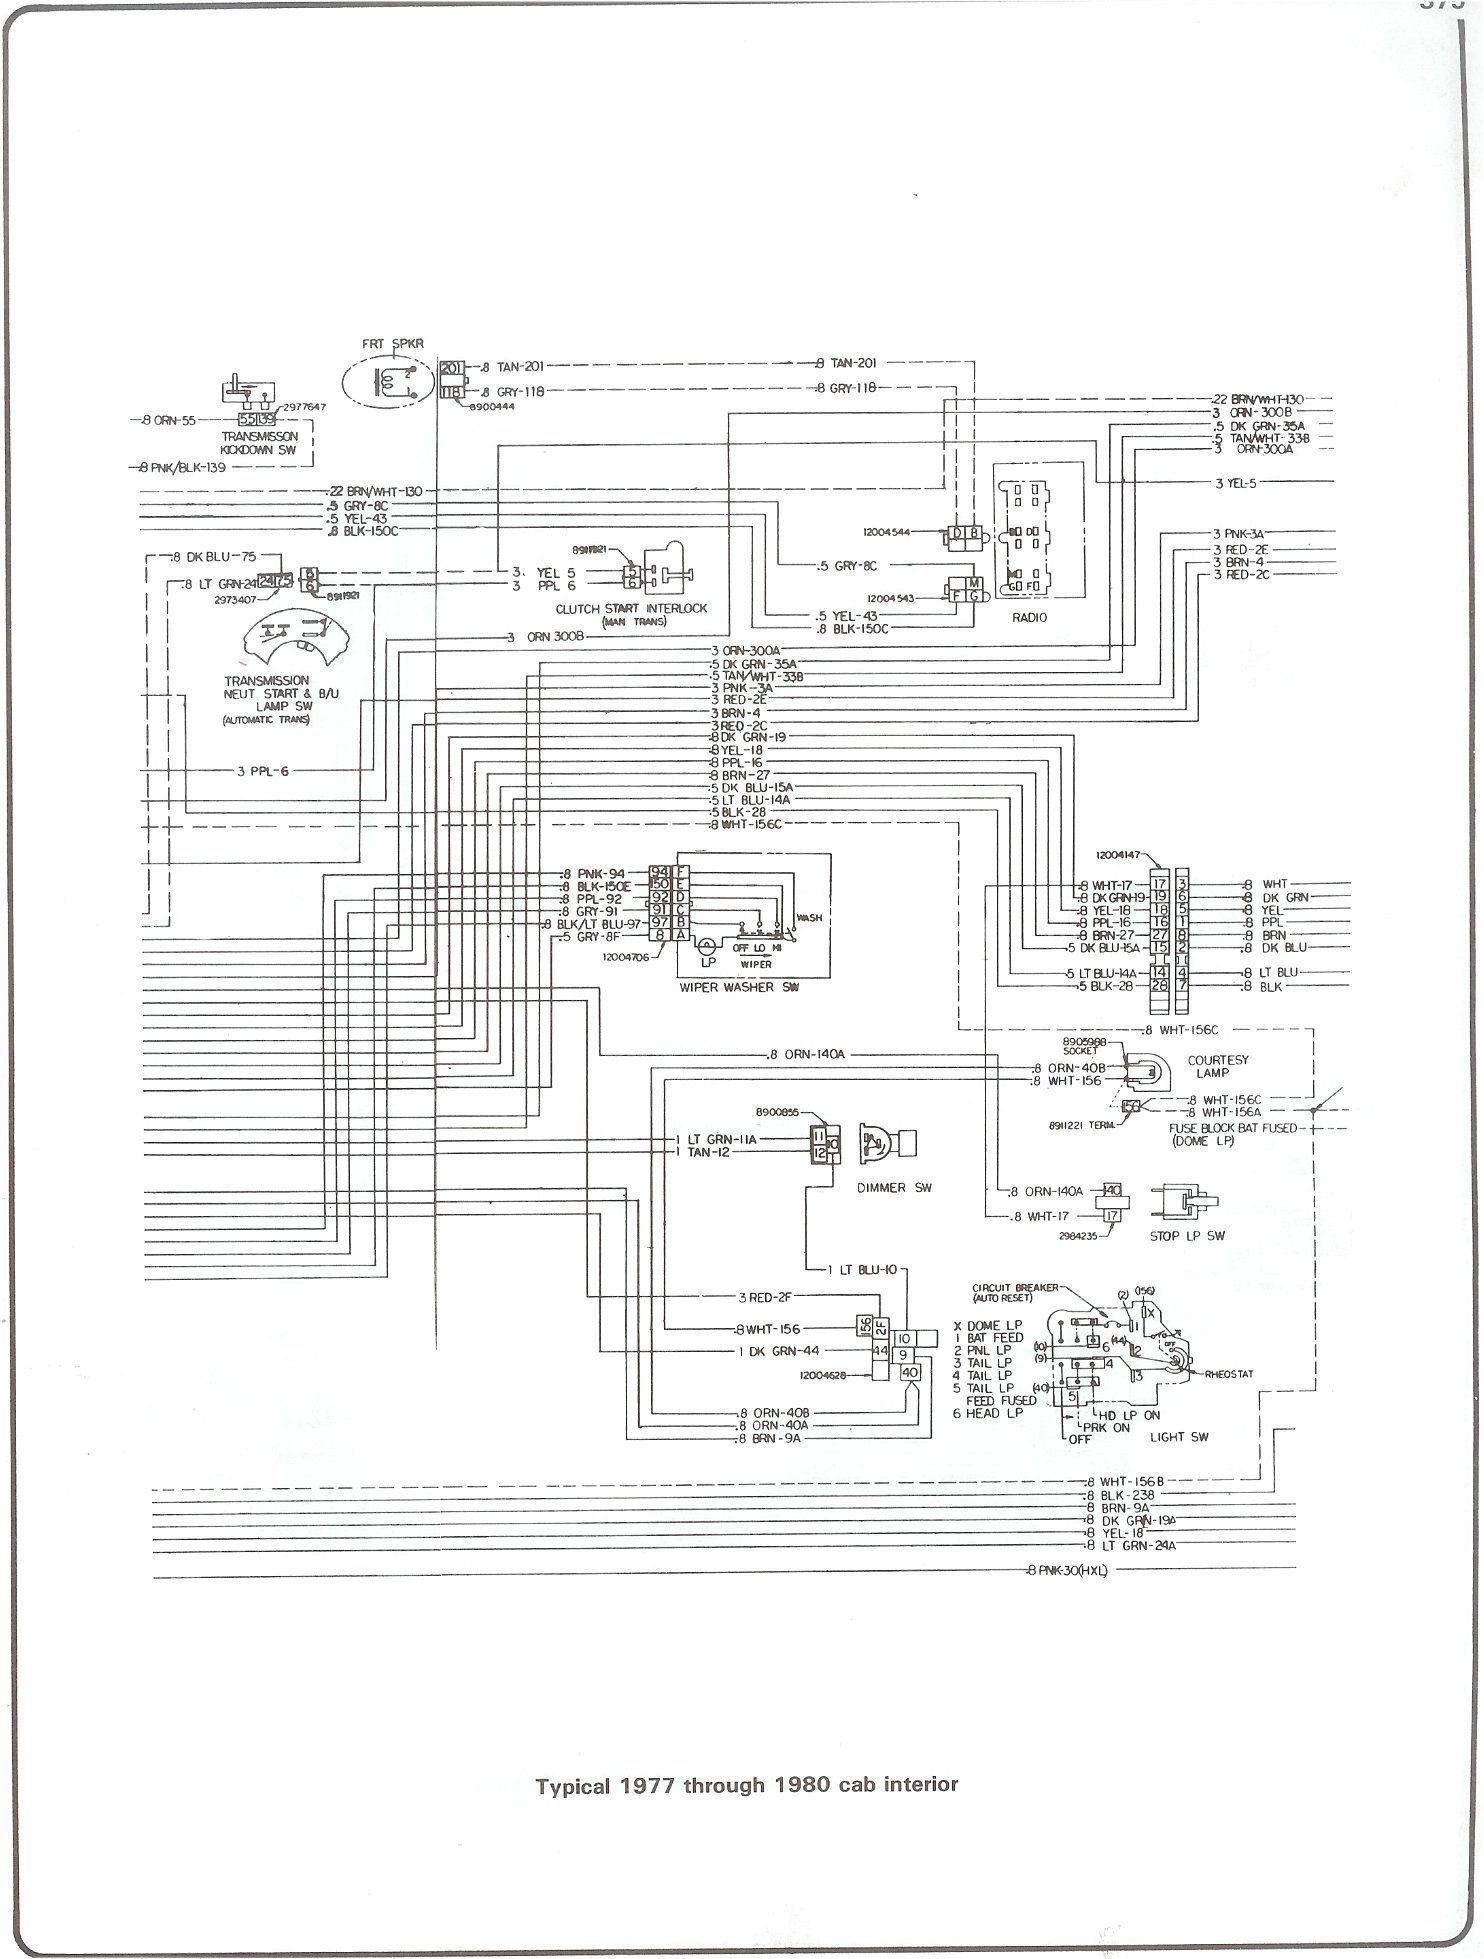 DIAGRAM] 67 Nova Headlight Wiring Diagram Picture FULL Version HD Quality  Diagram Picture - NODELABORATORY.EDF-RECRUTEMENT.FRedf-recrutement.fr